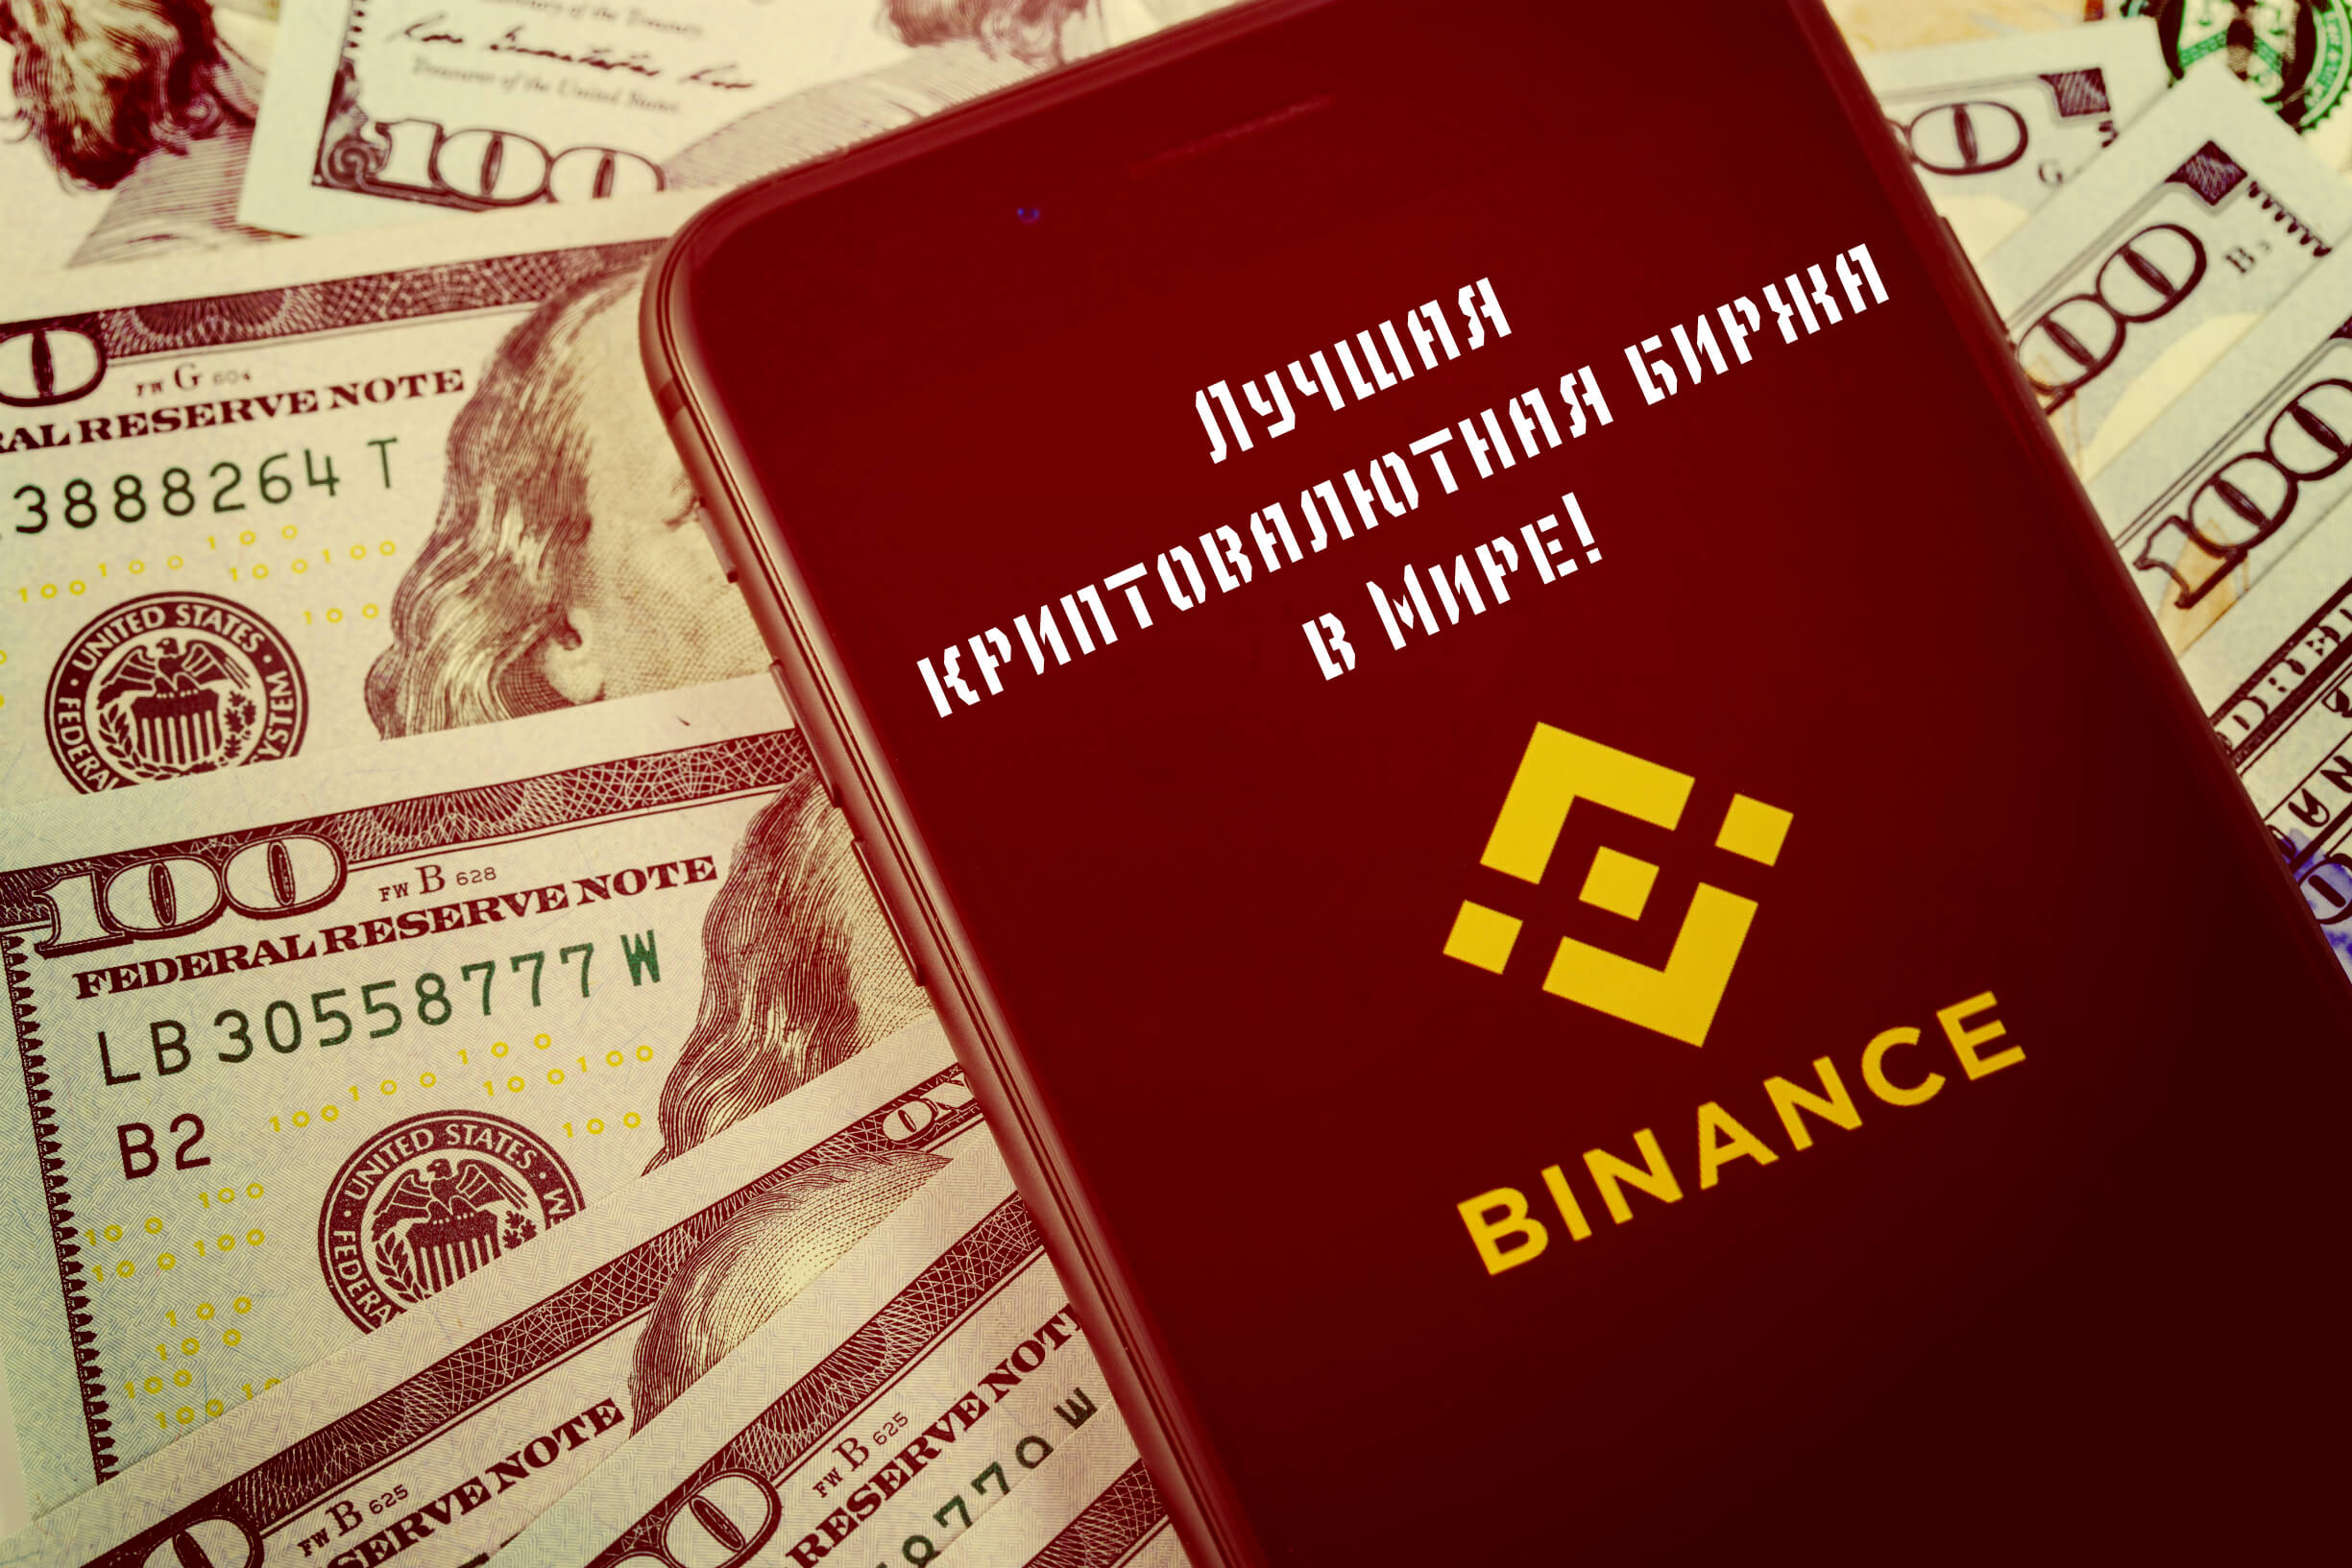 https://www.binance.com/?ref=21376791